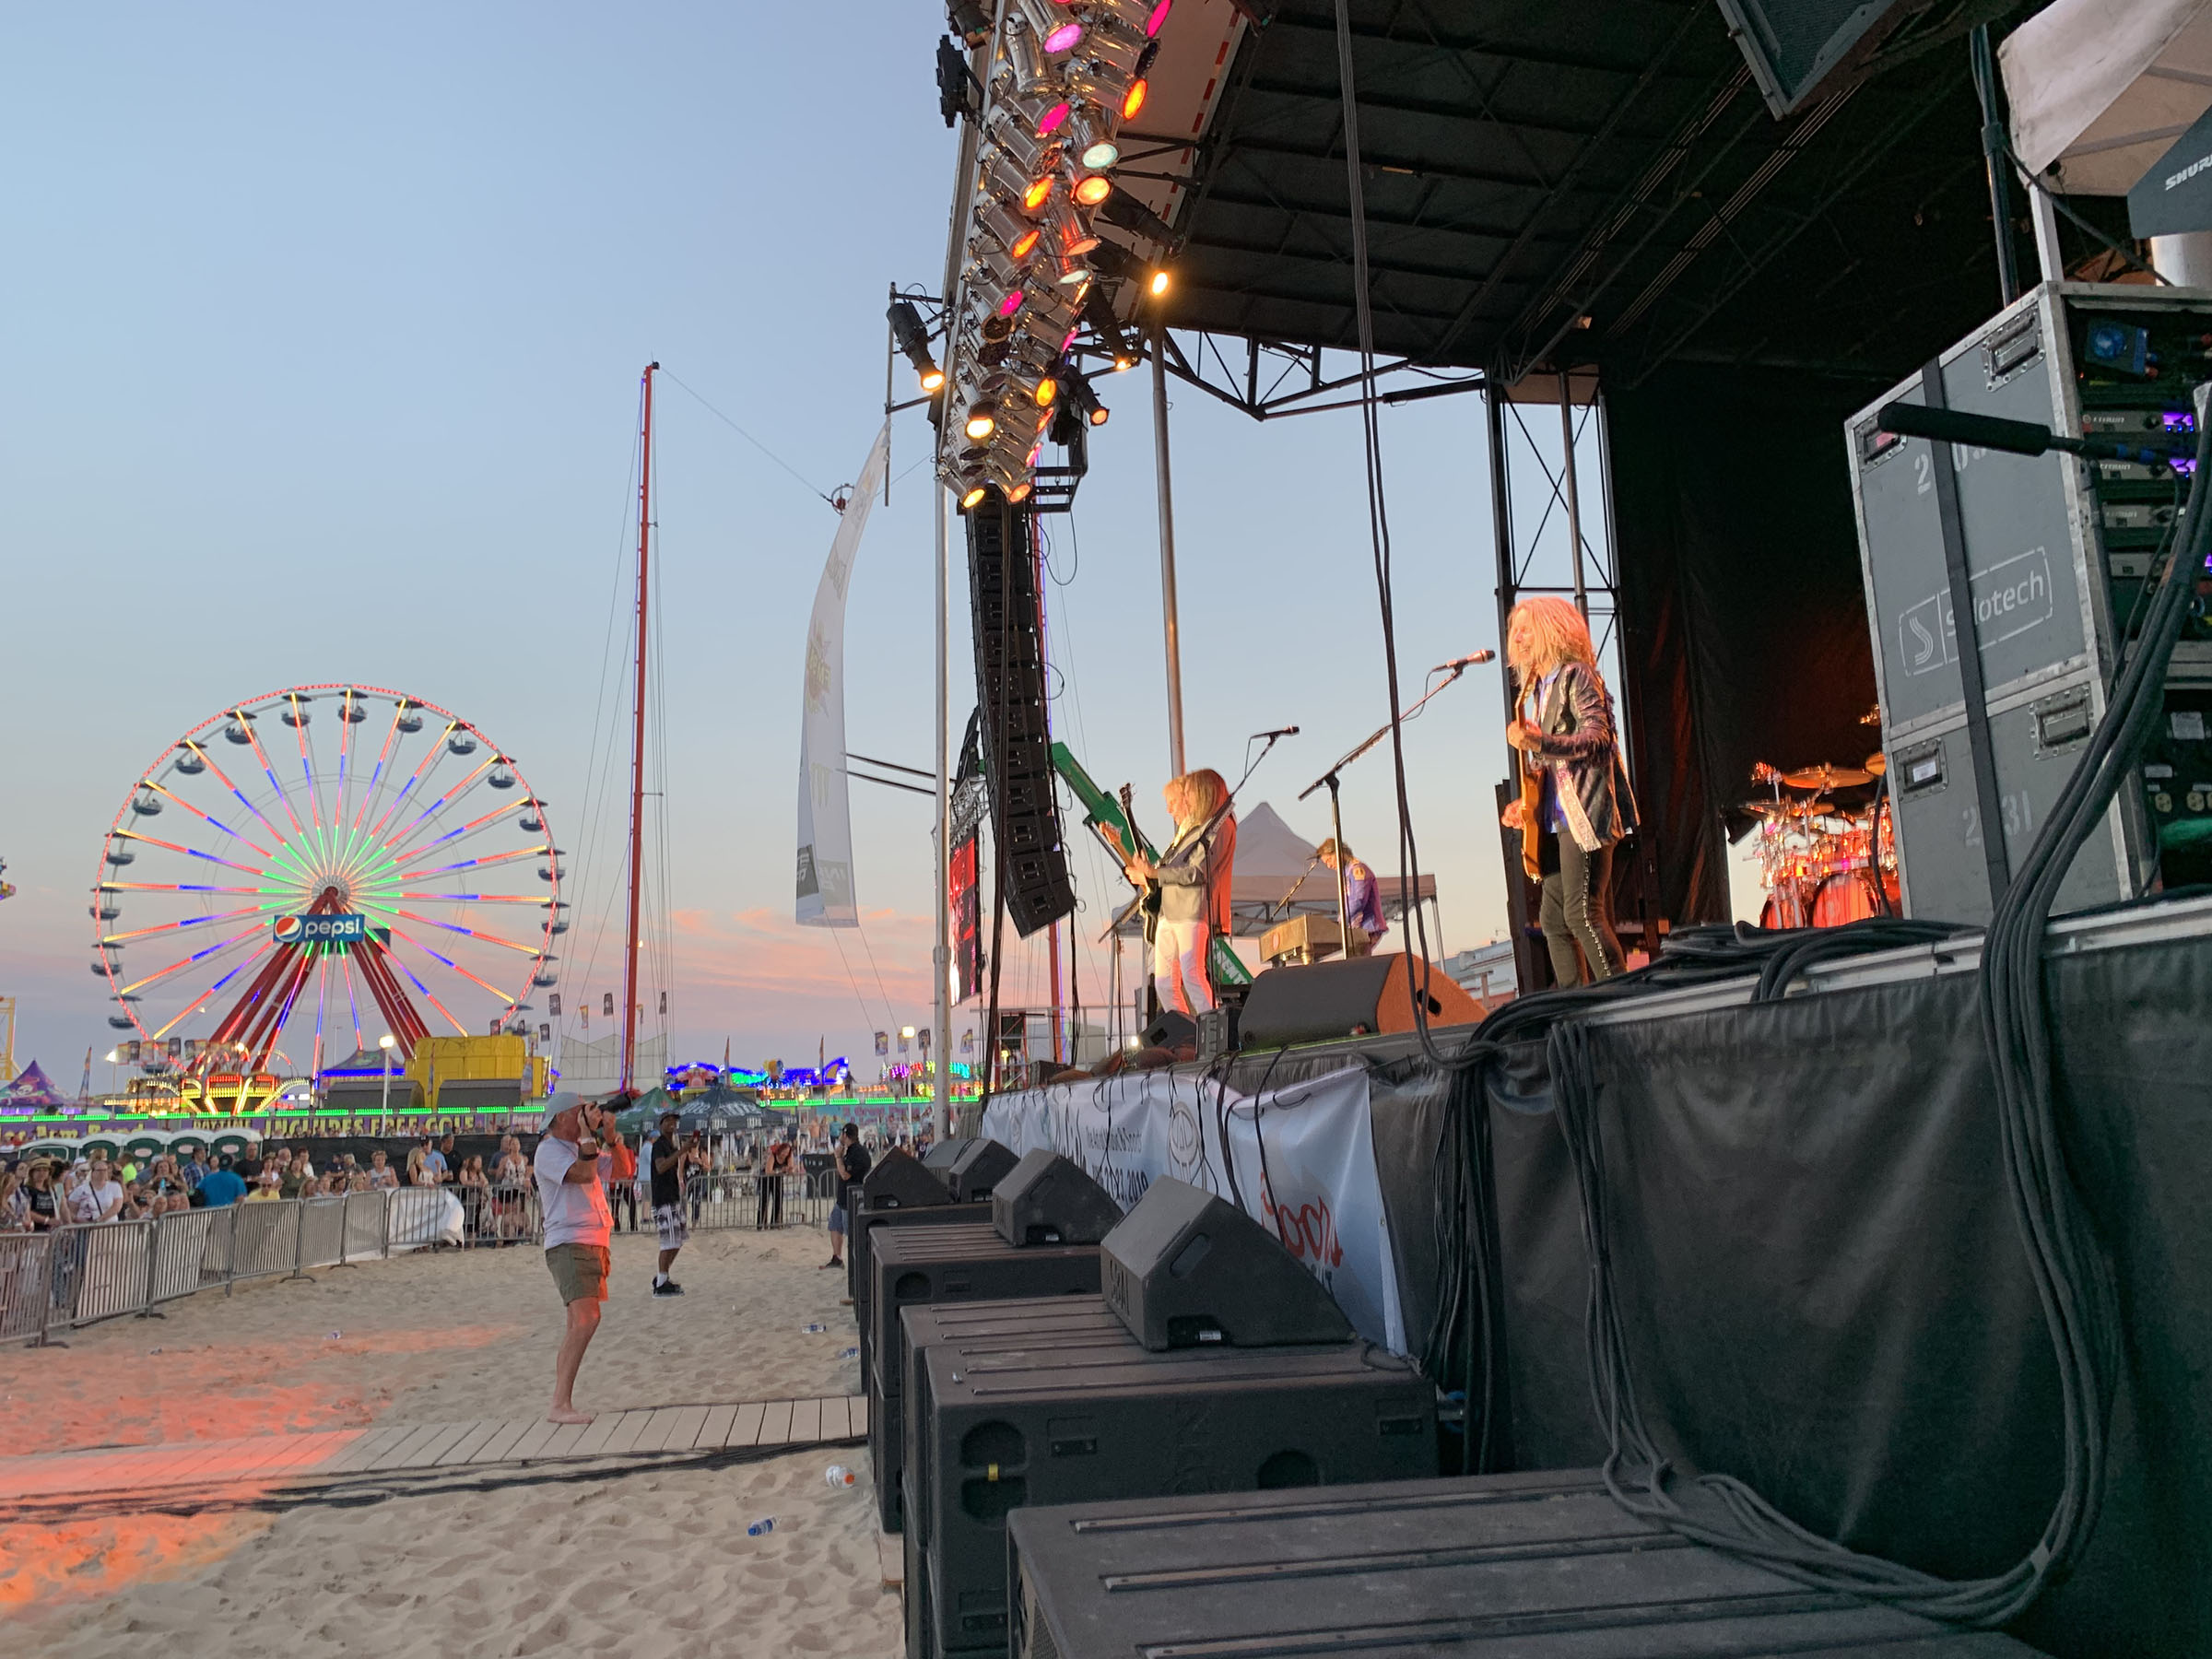 Ocean City Md Events 2020.09 26 2019 Oc S Jellyfish Festival Wants To Return For